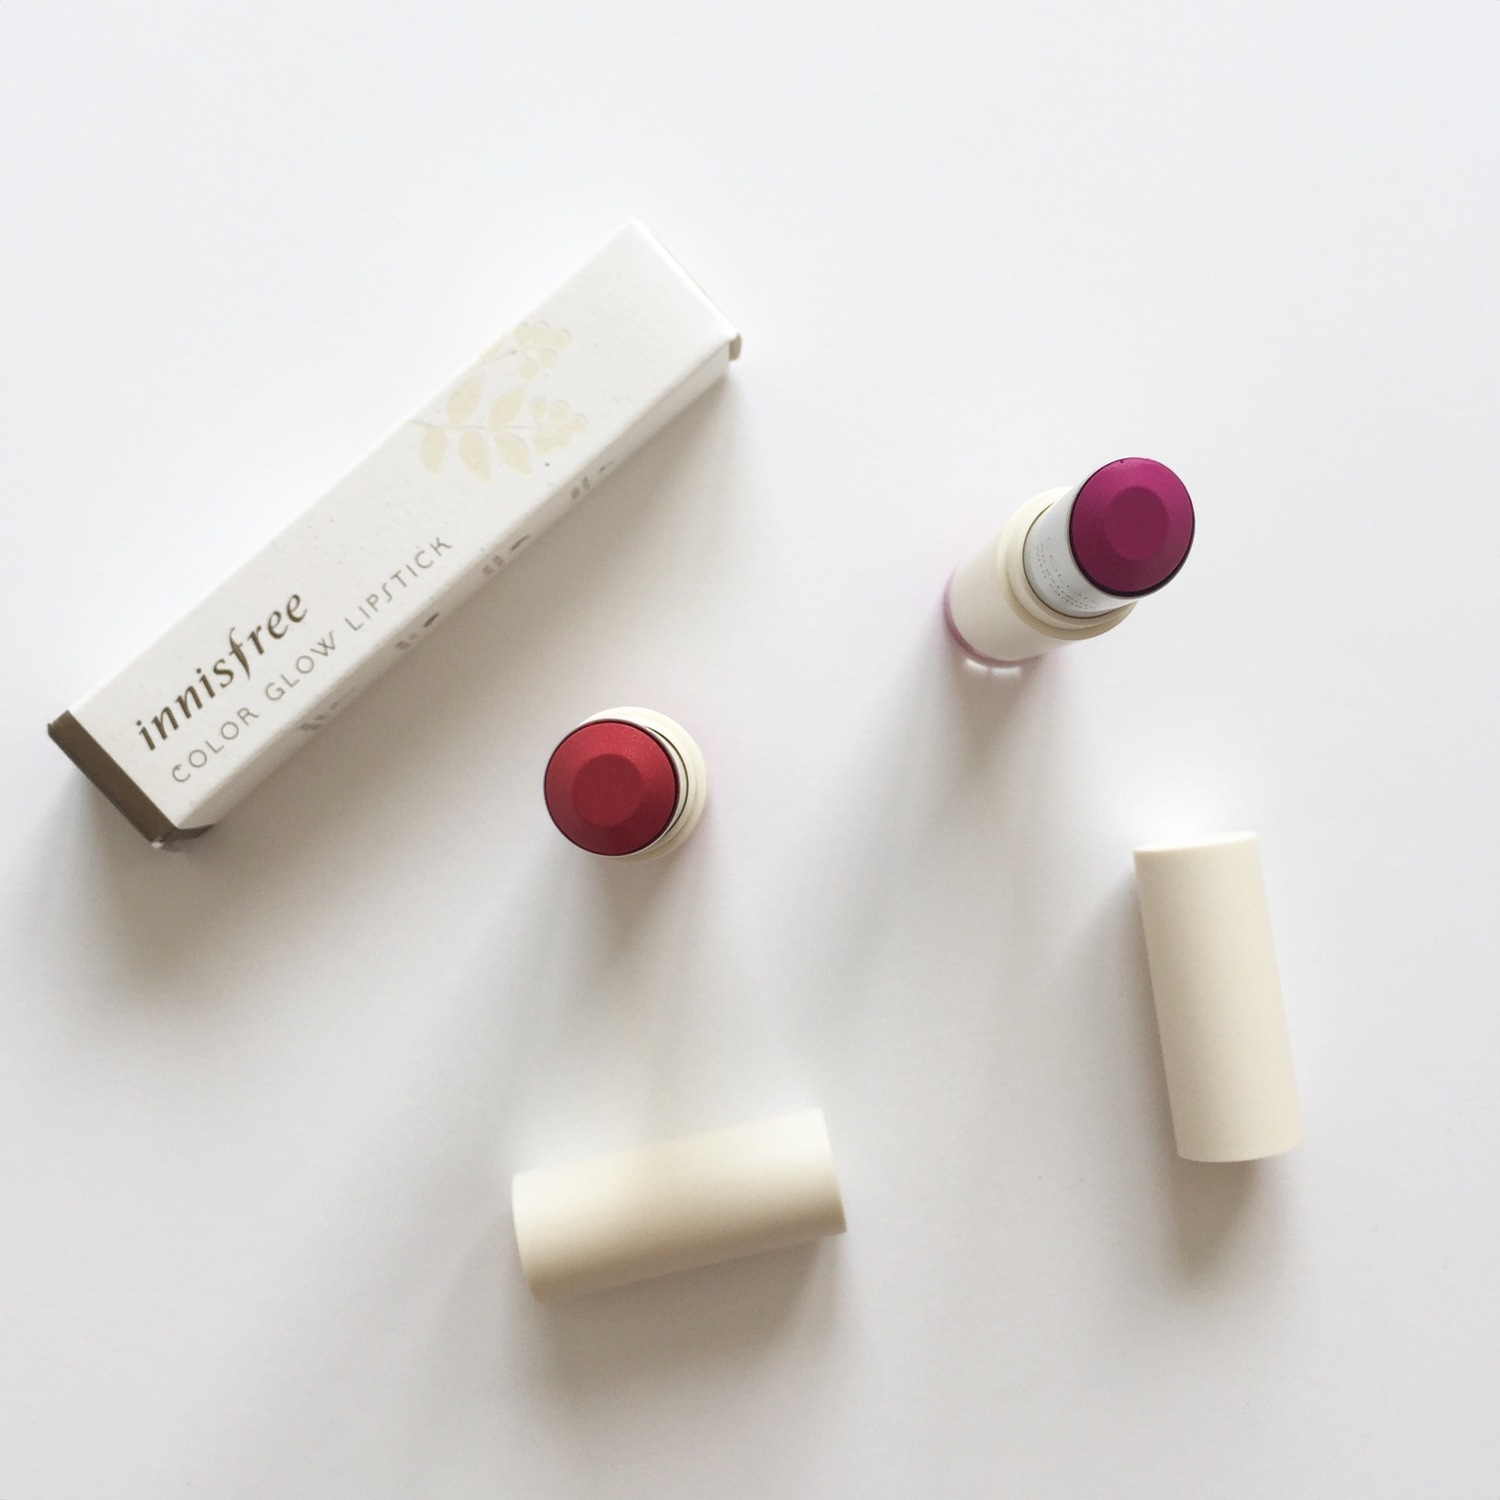 Innisfree+Colour+Glow+liptick+review.jpeg